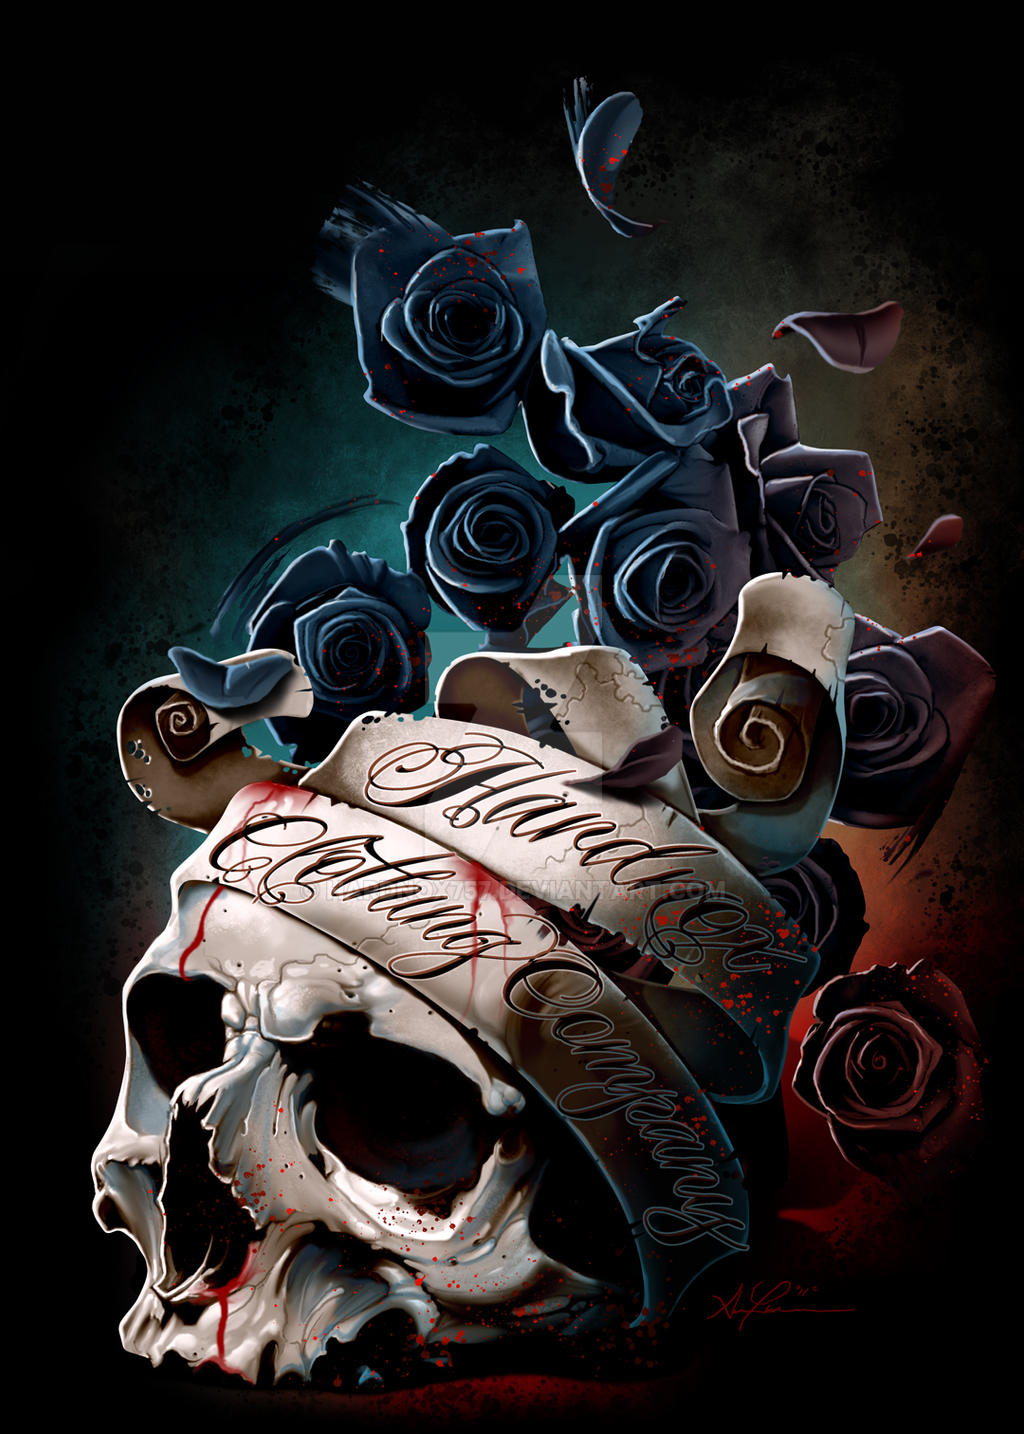 skull and roses wallpapers - photo #25